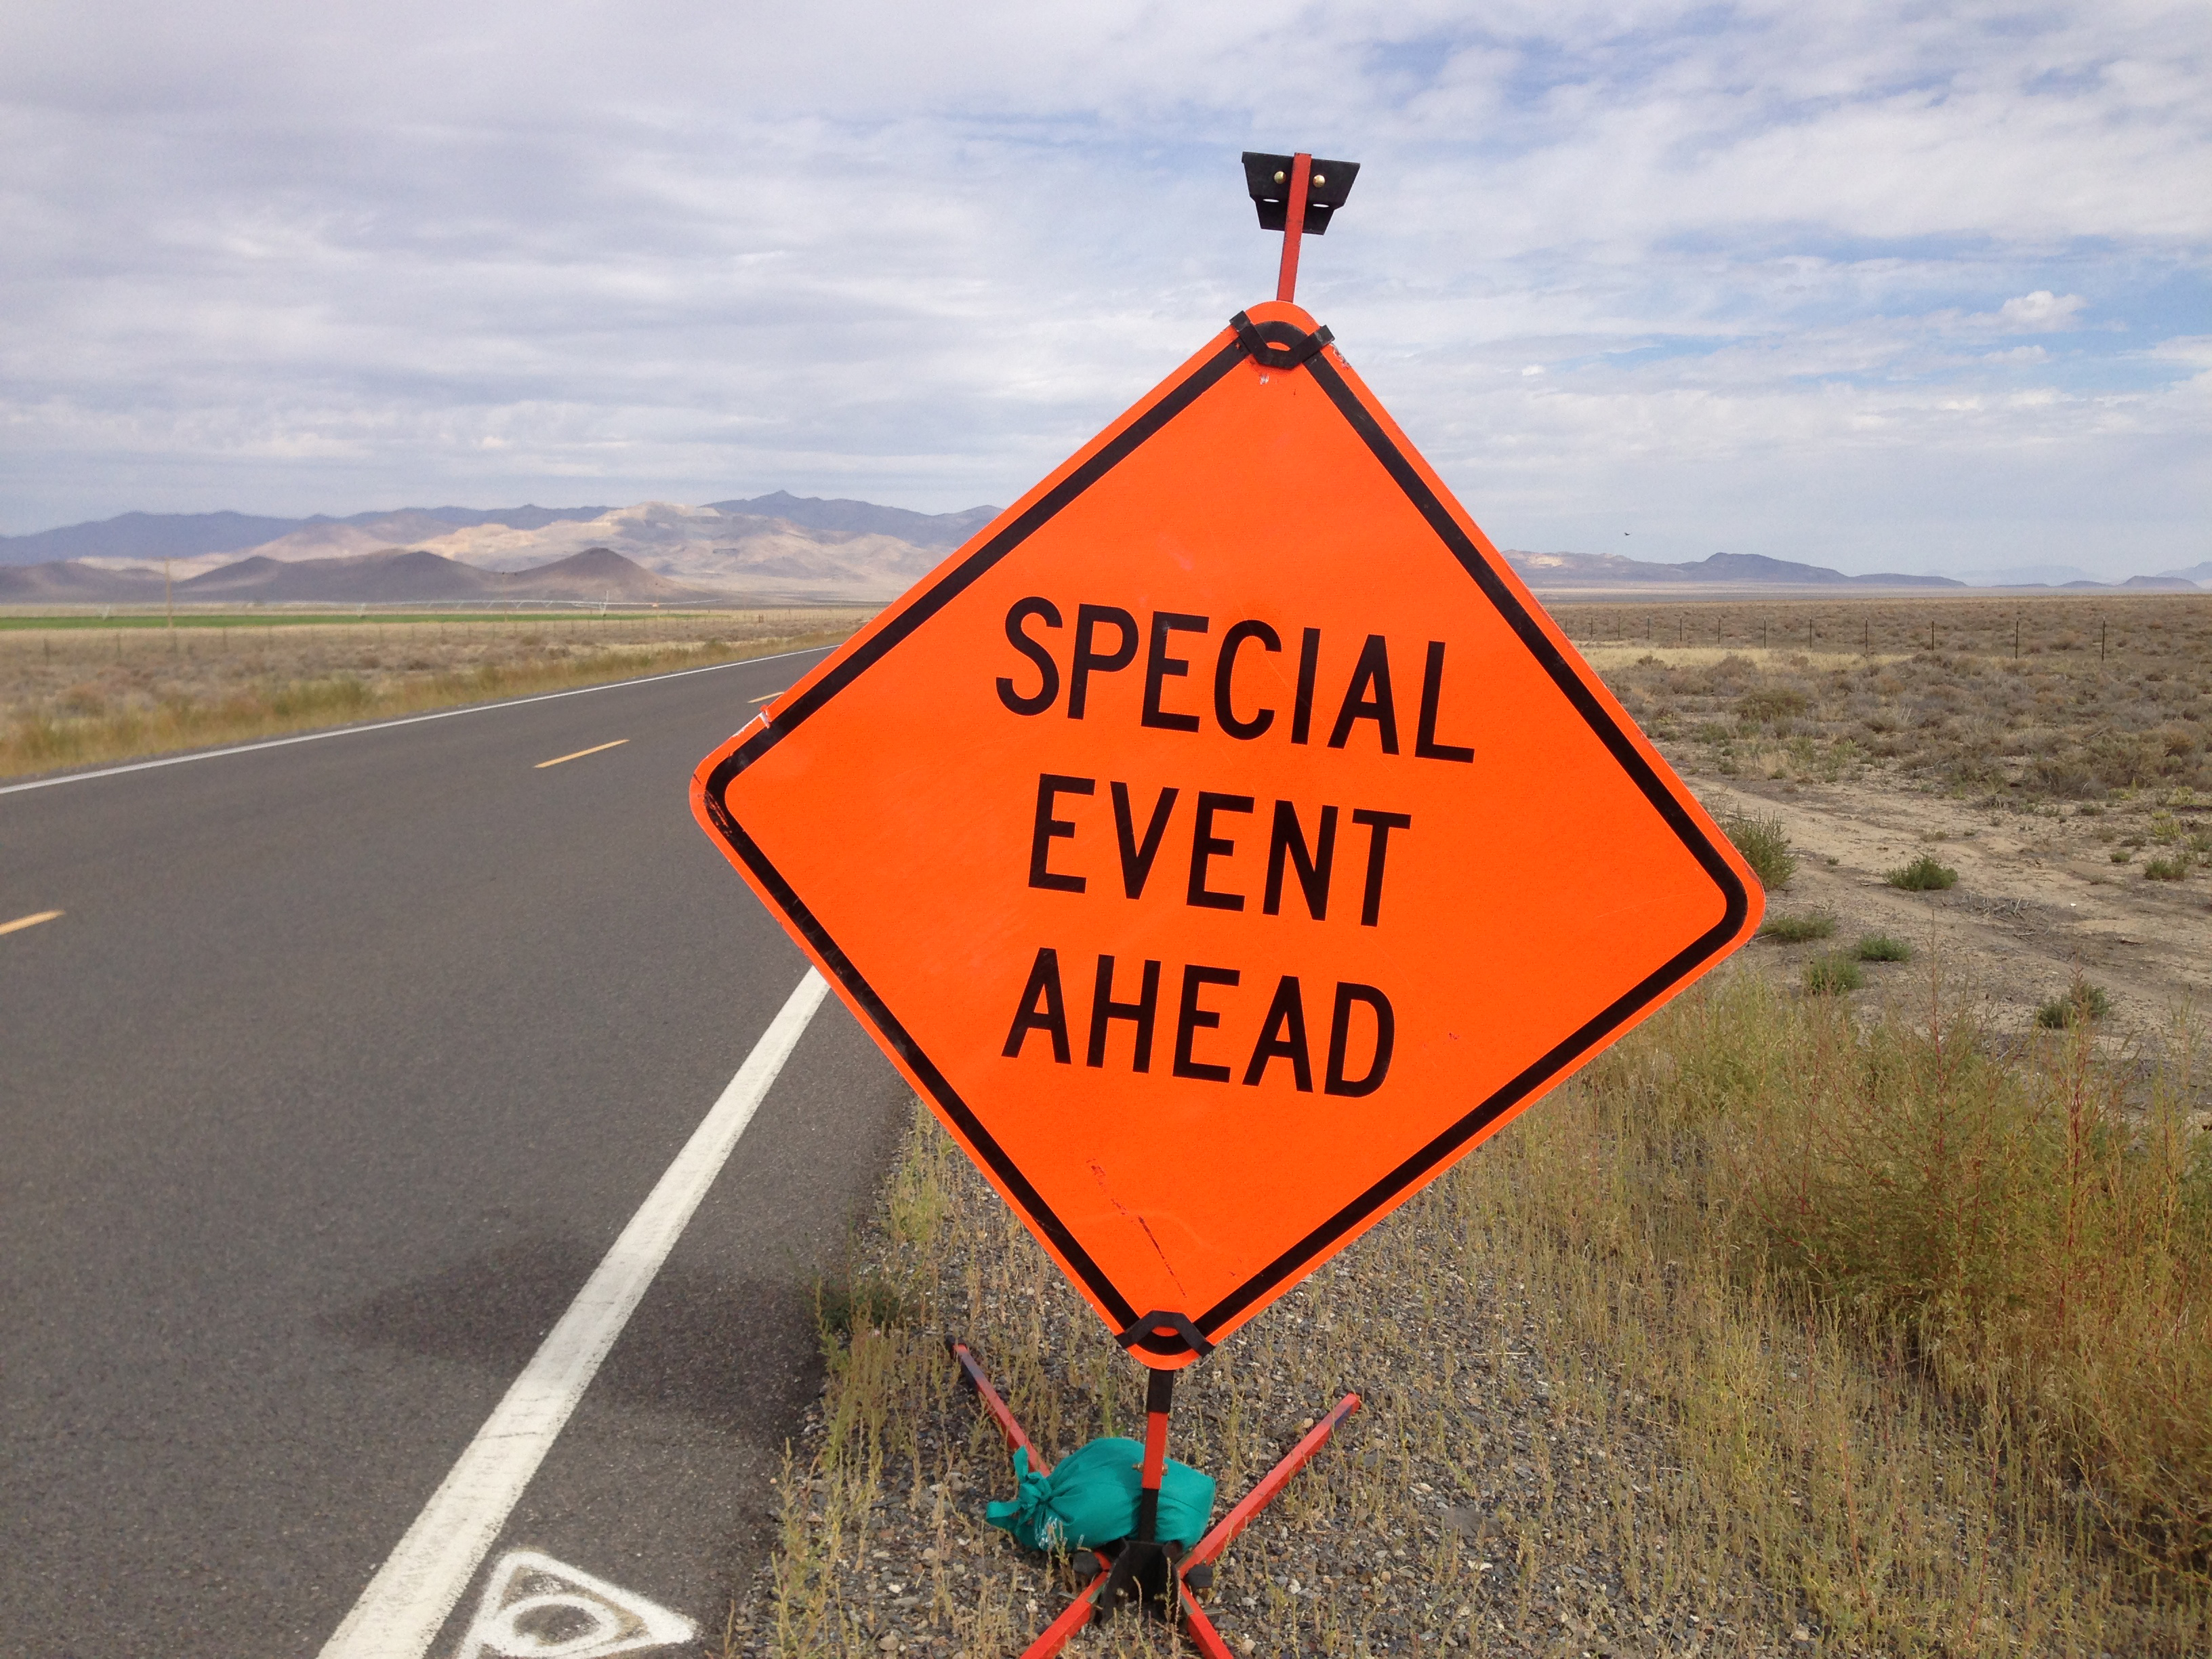 Special event ahead sign.